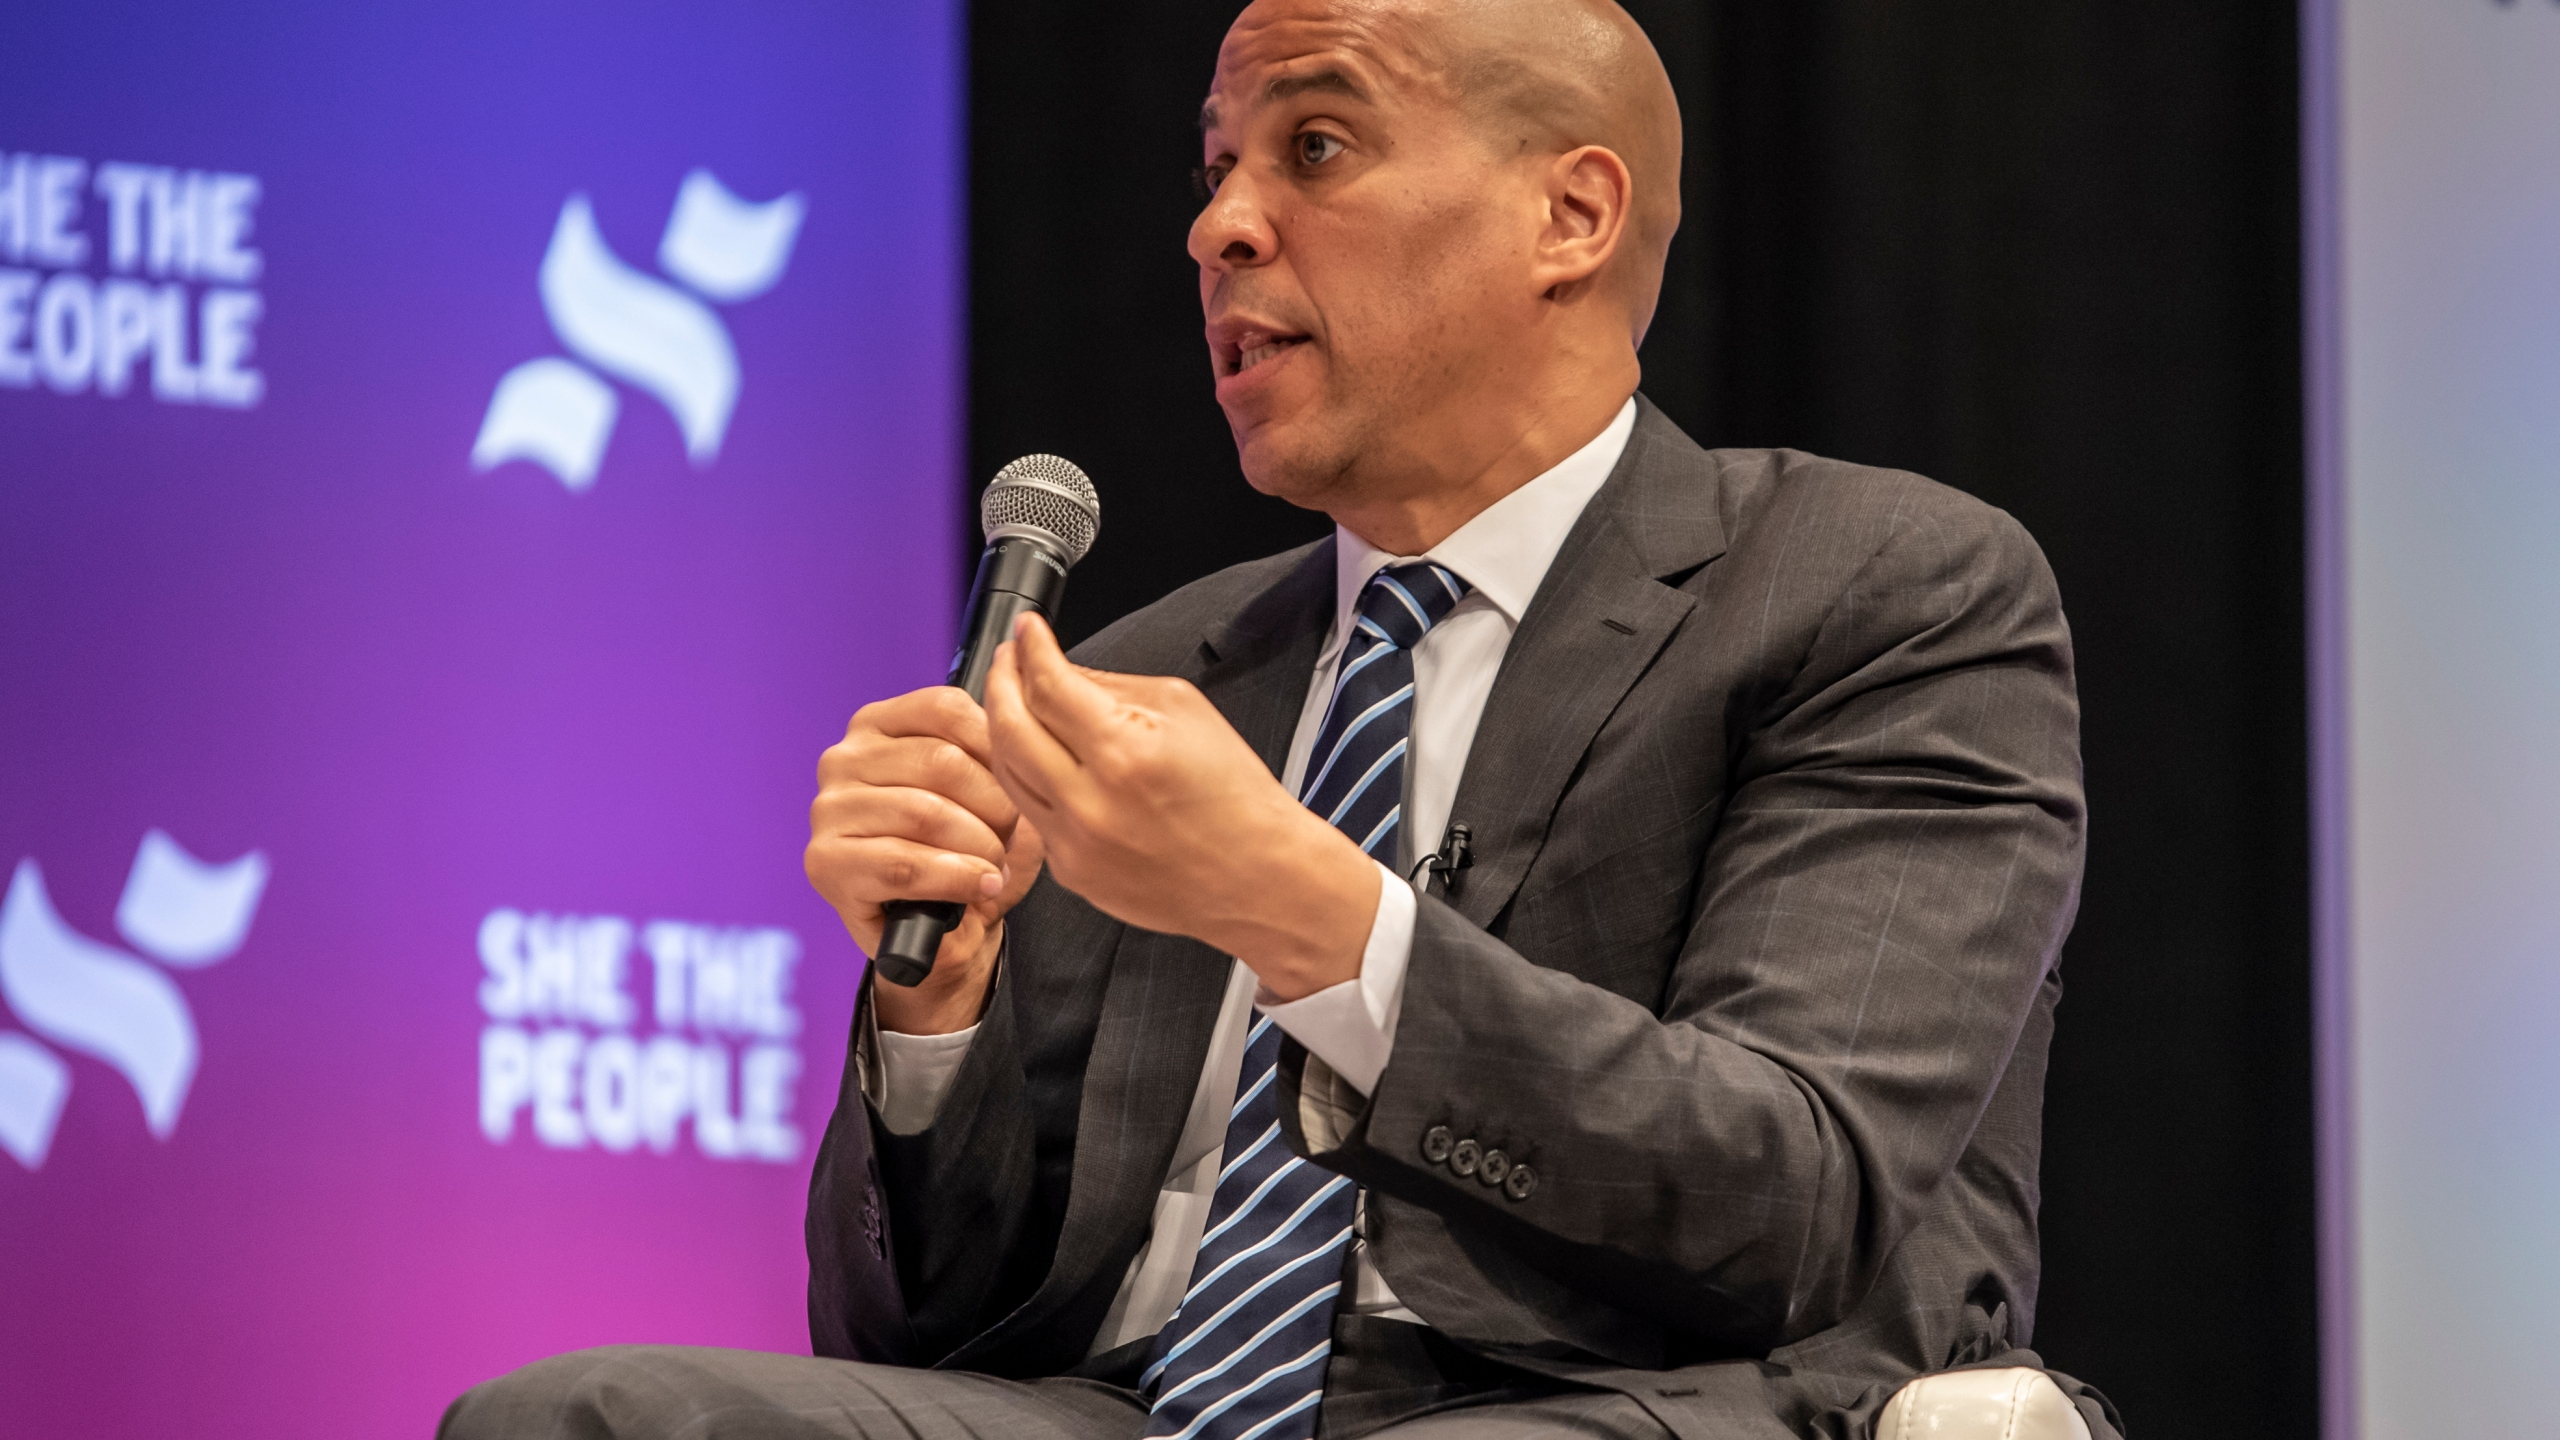 Democratic presidential candidate Sen. Cory Booker (D-NJ) speaks to a crowd at the She The People Presidential Forum at Texas Southern University on April 24, 2019 in Houston, Texas. (Credit: Sergio Flores/Getty Images)